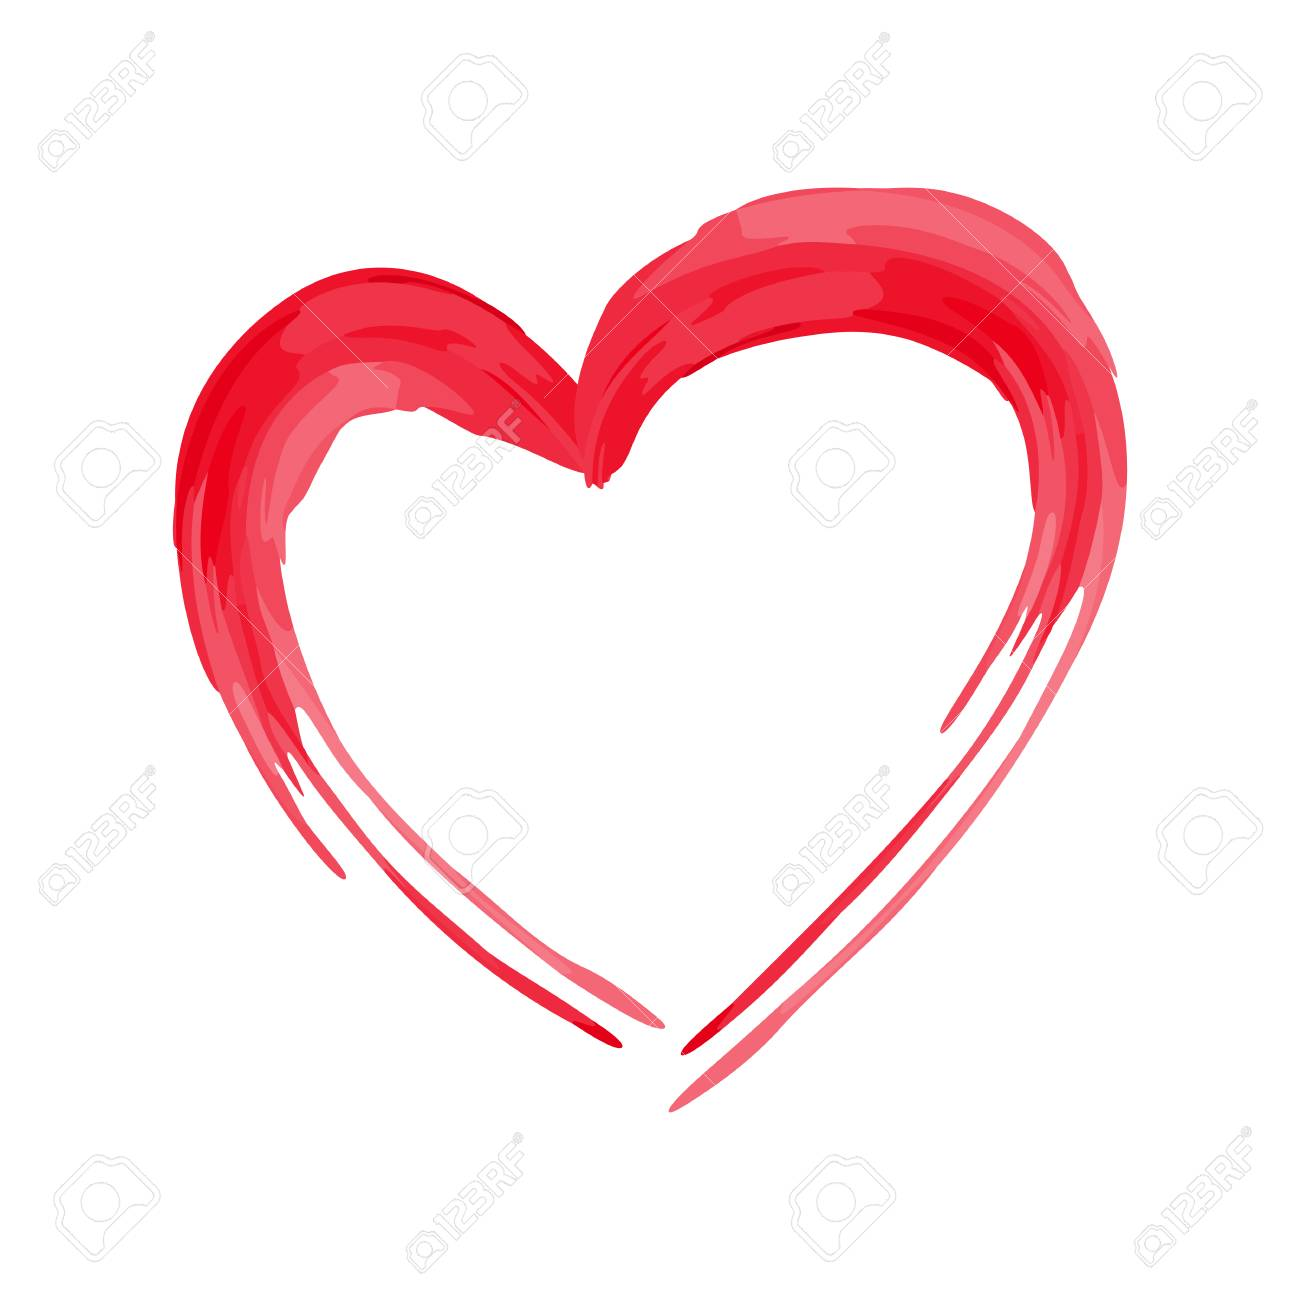 Heart Shape Design For Love Symbols Valentines Day Royalty Free